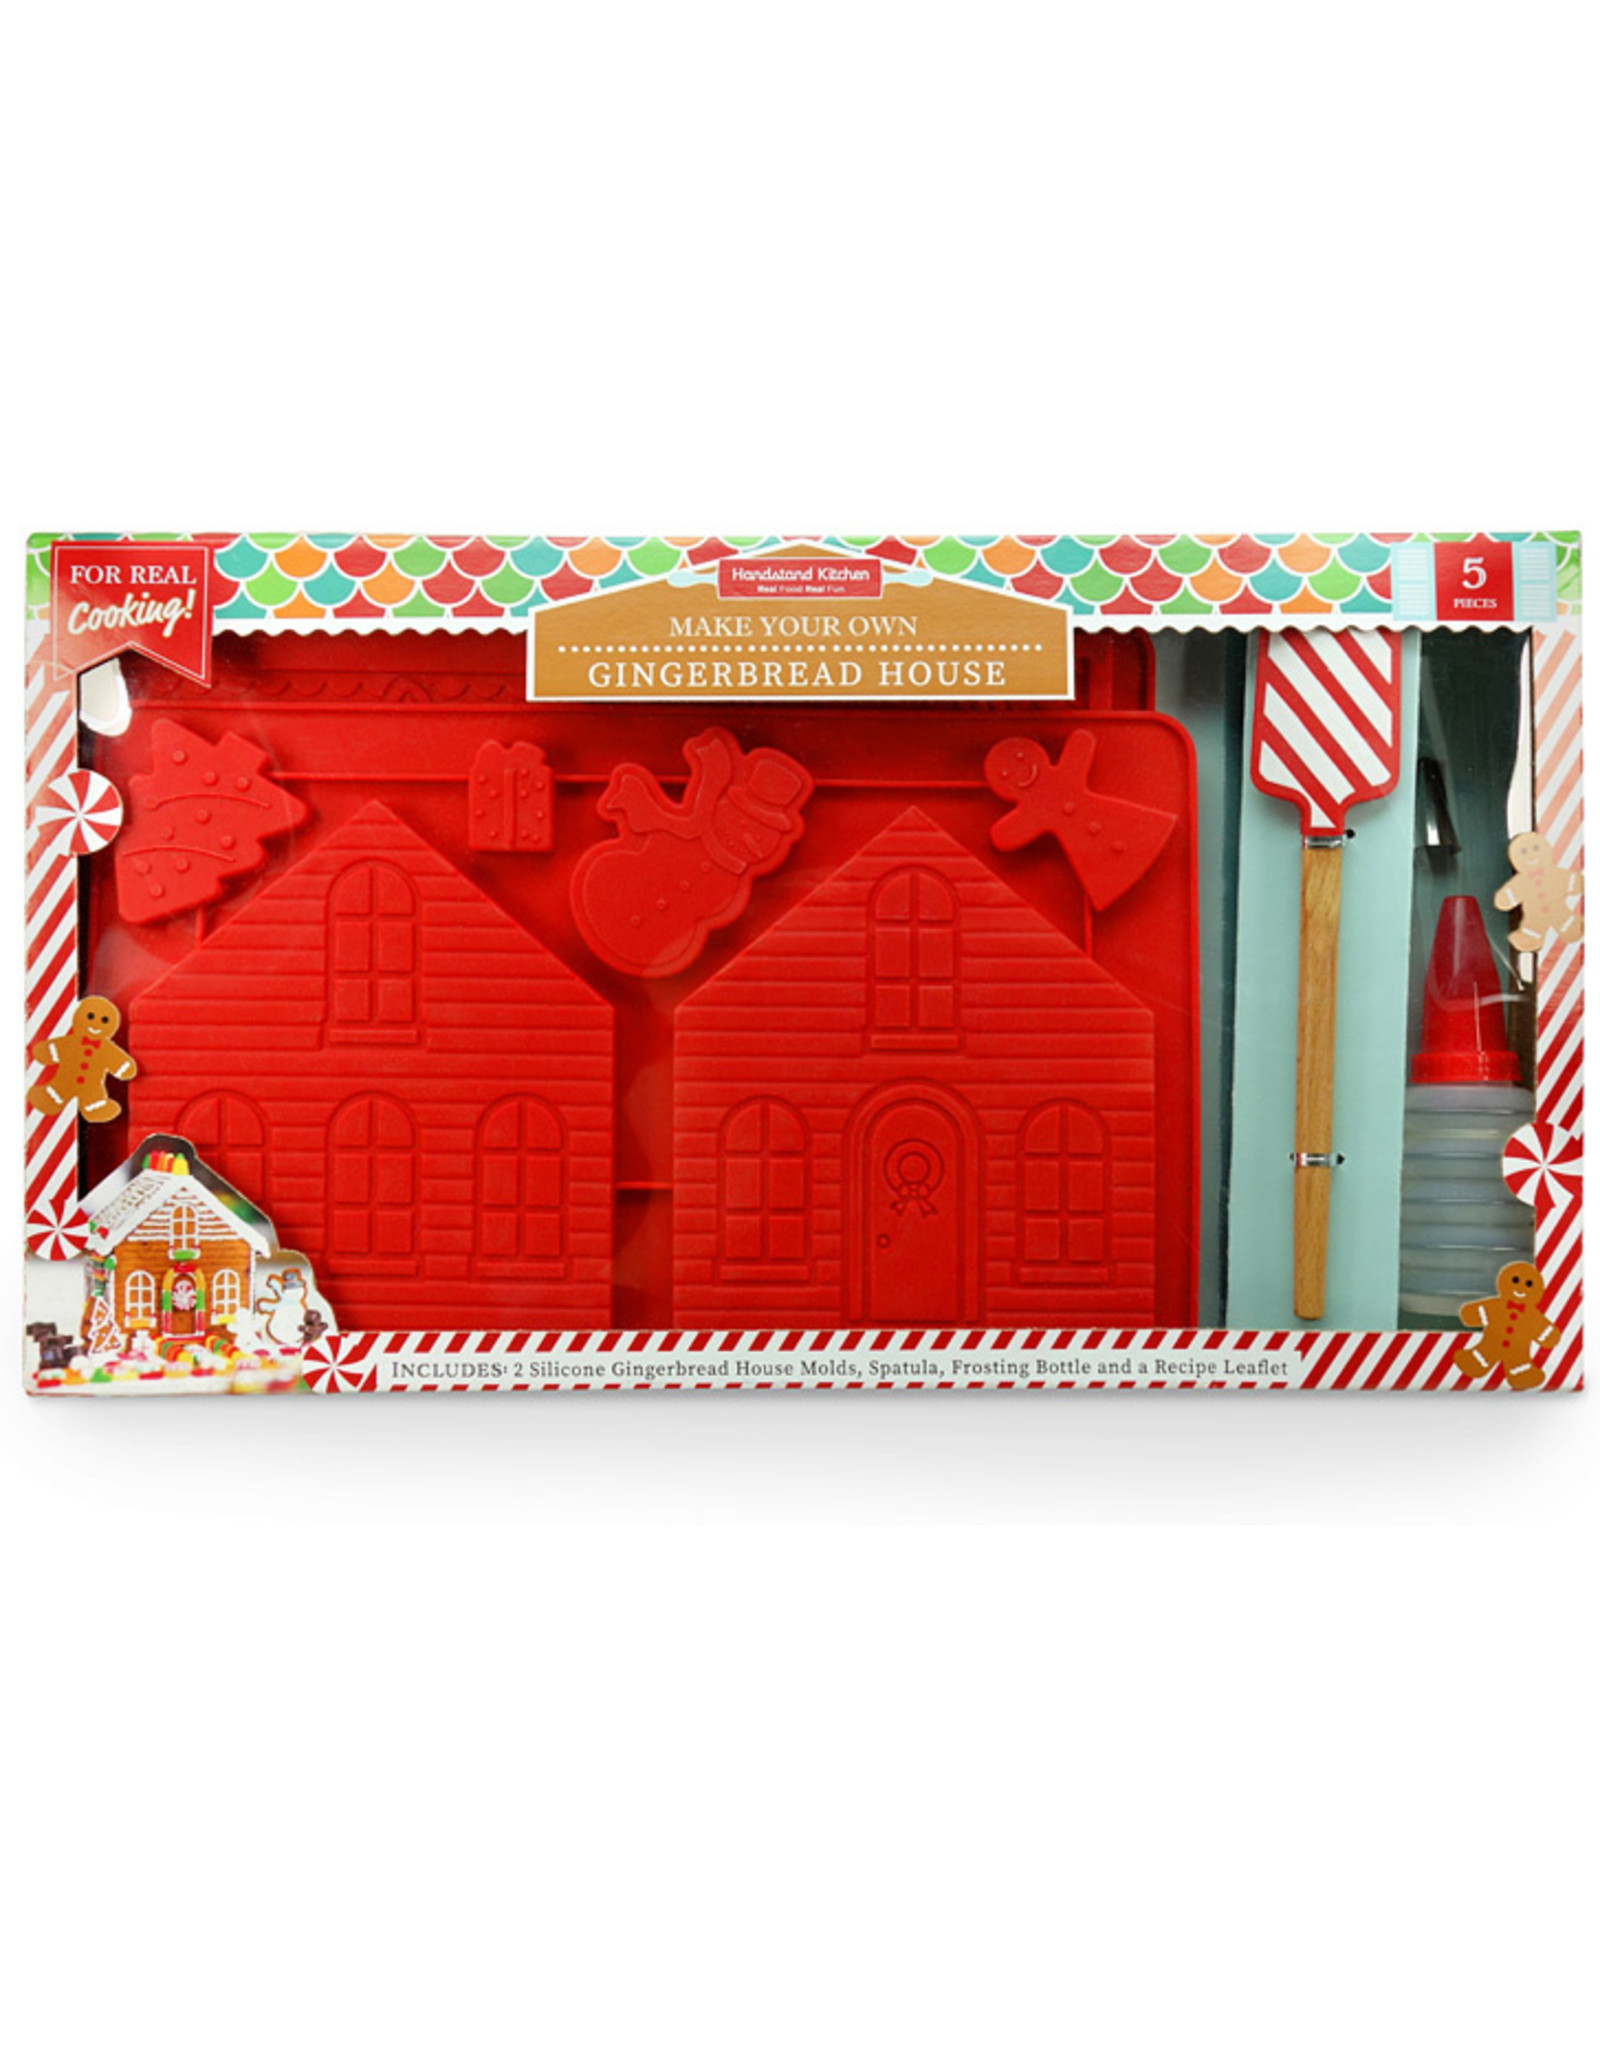 Handstand Kitchen Make Your Own Gingerbread House